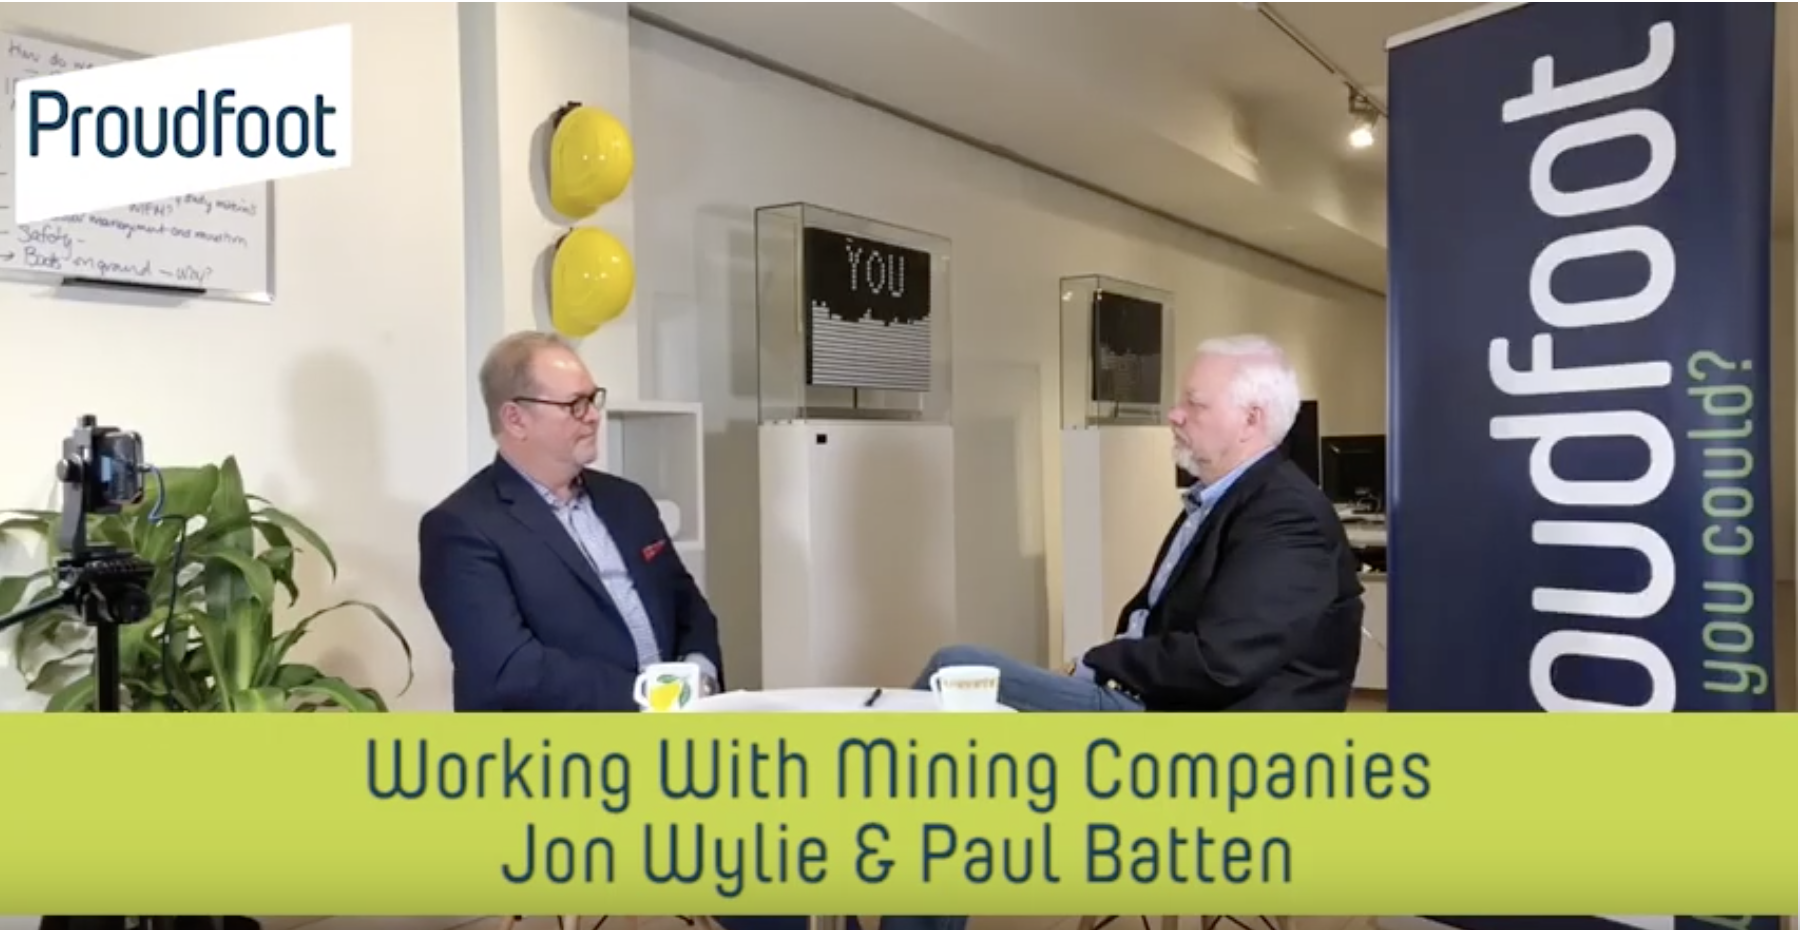 Proudfoot Working With Mining Companies